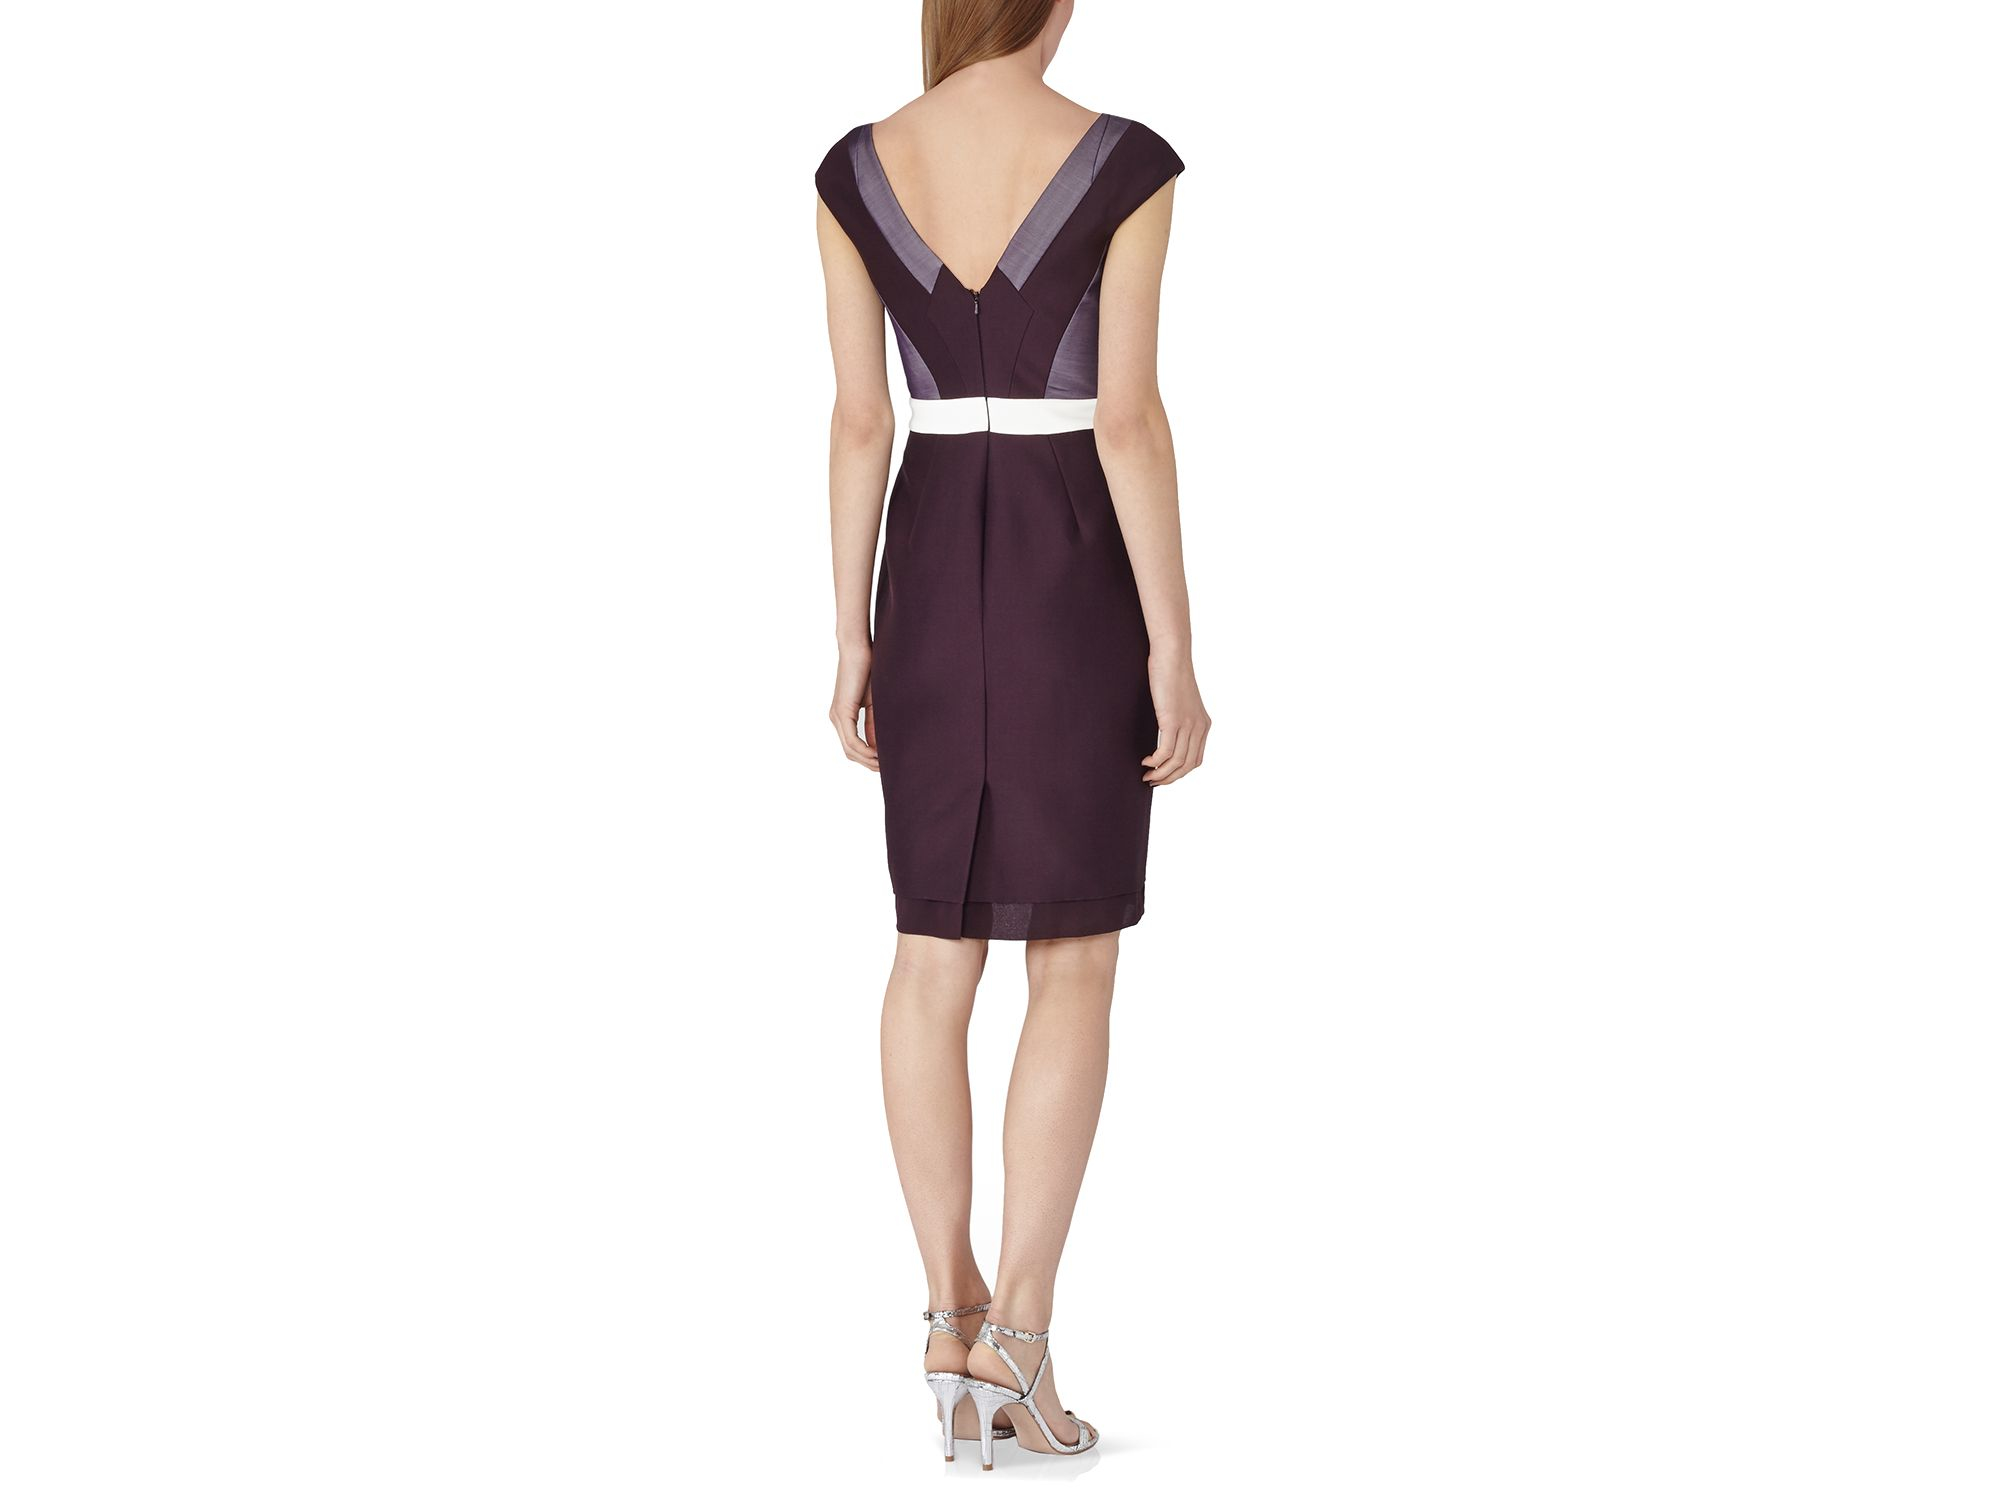 Lyst - Reiss Lianora Embellished Color Block Dress in Purple